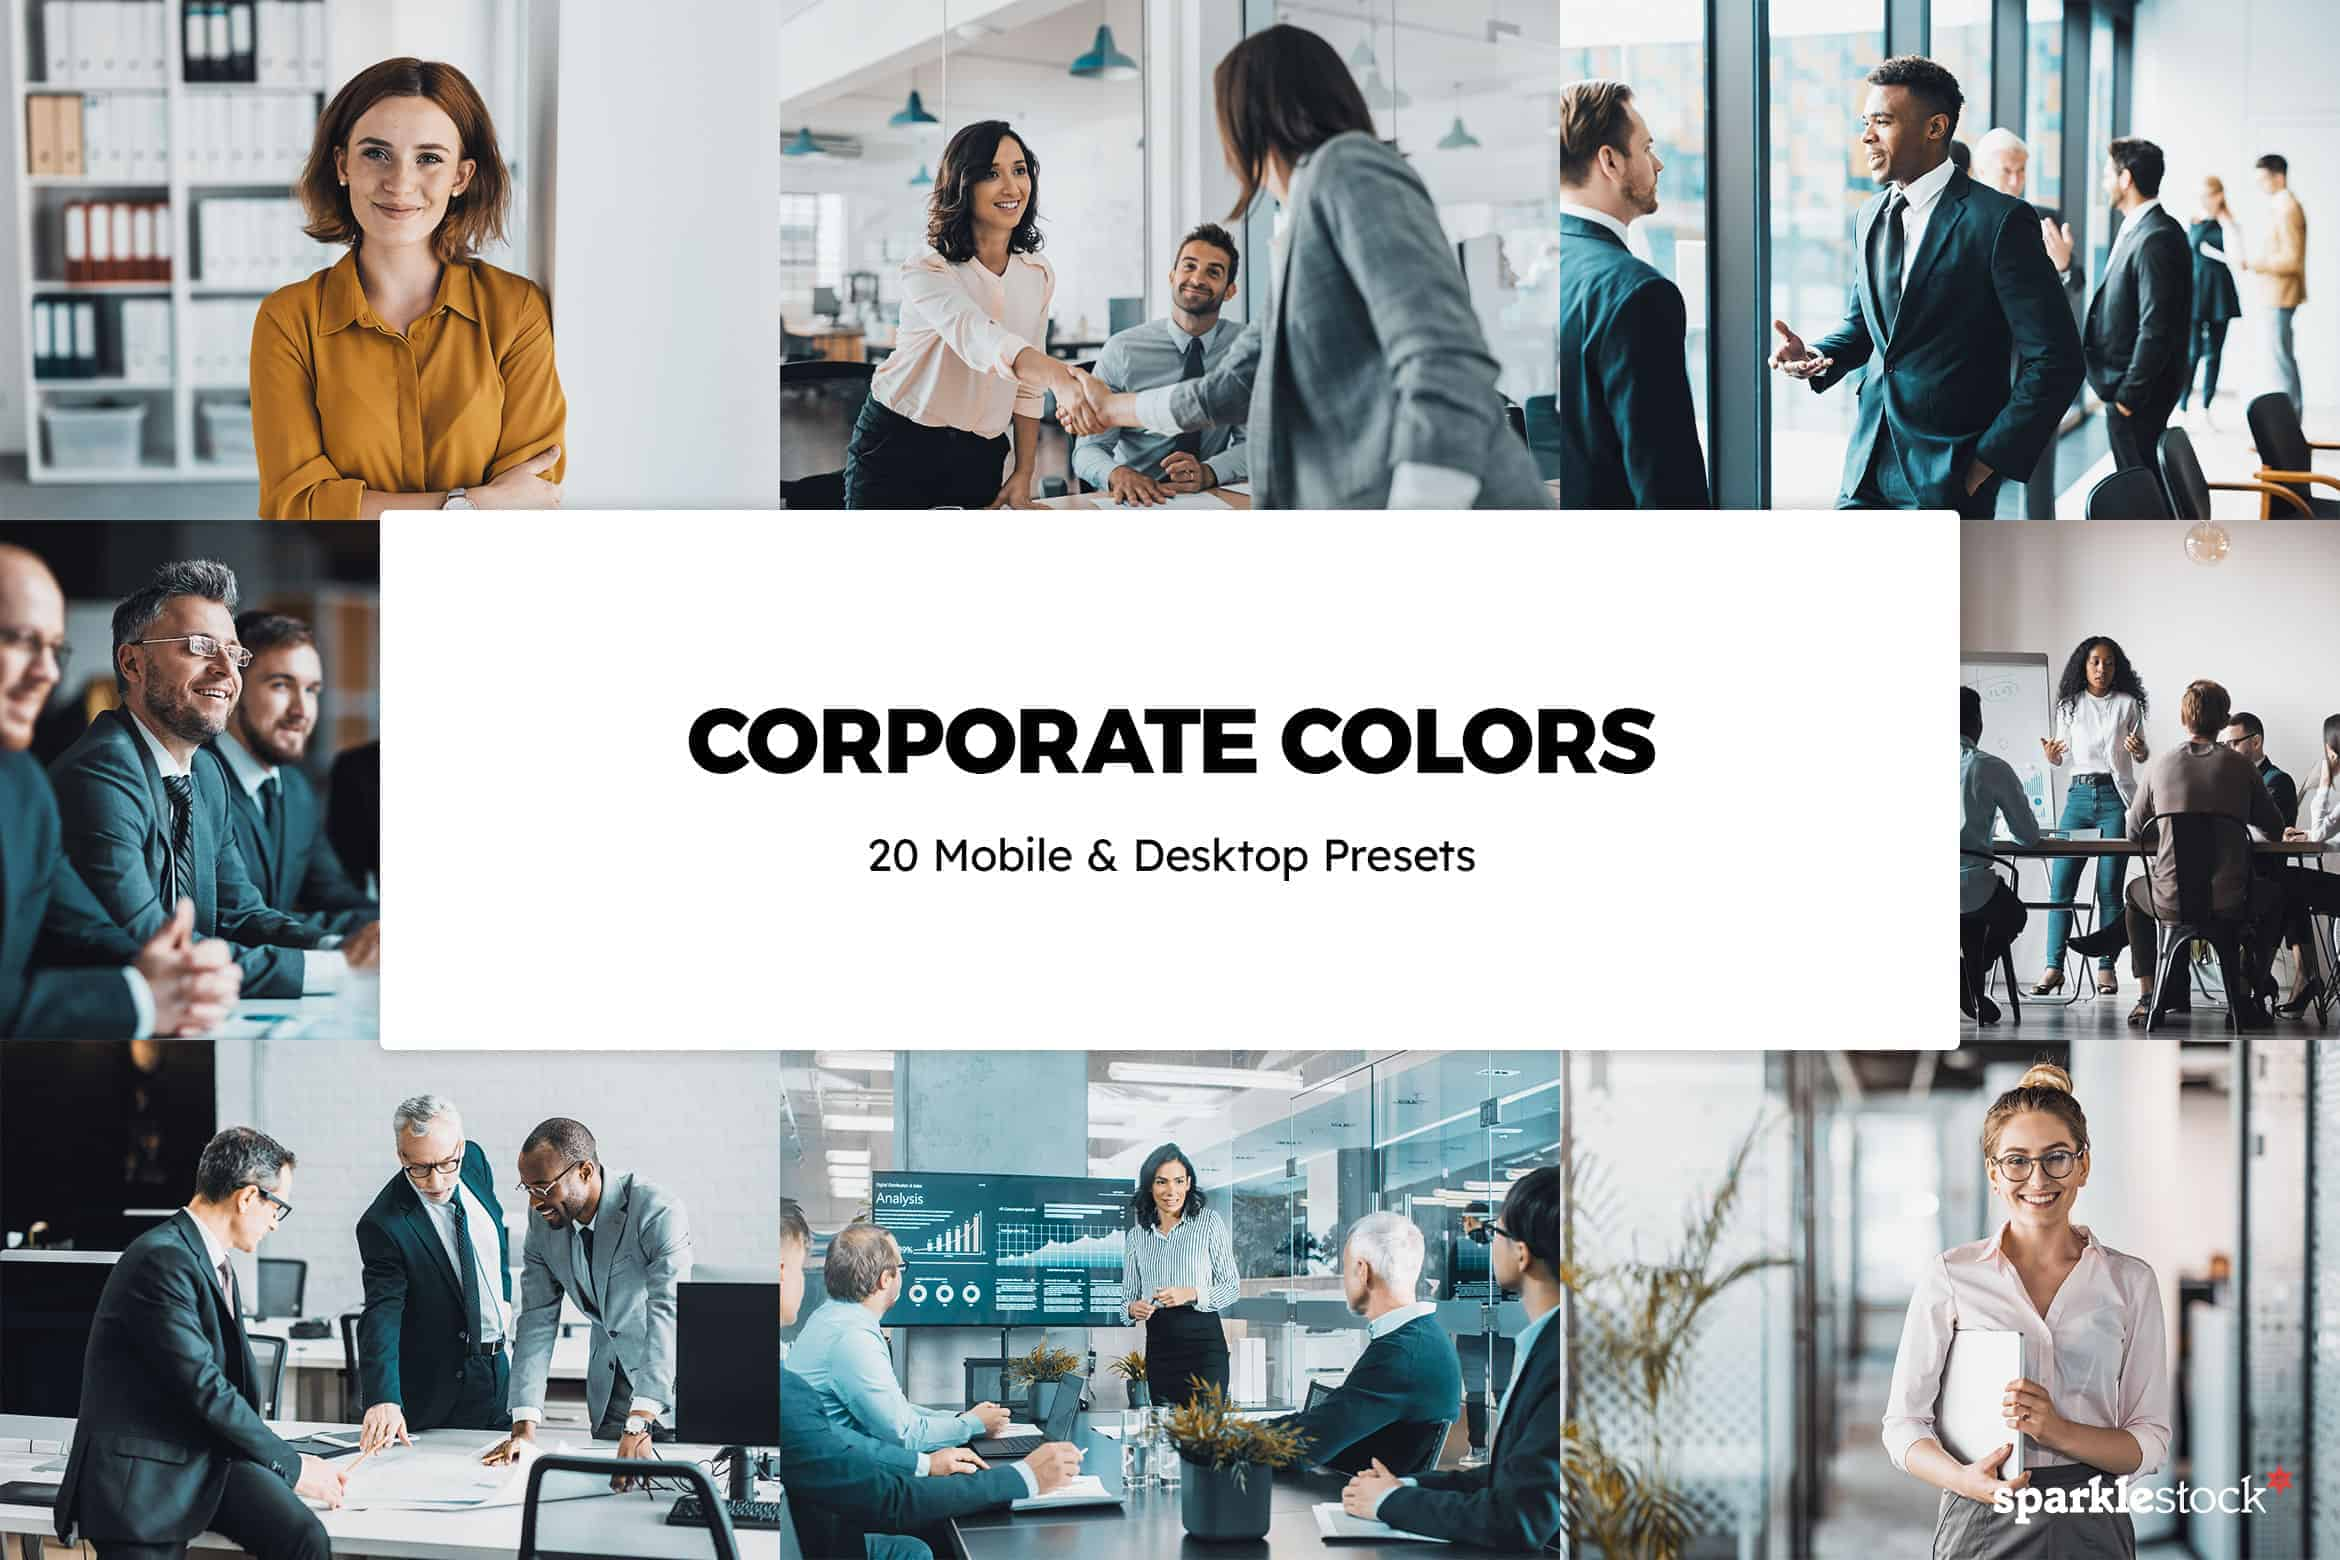 8 Free Corporate Colors Lightroom Presets and LUTs